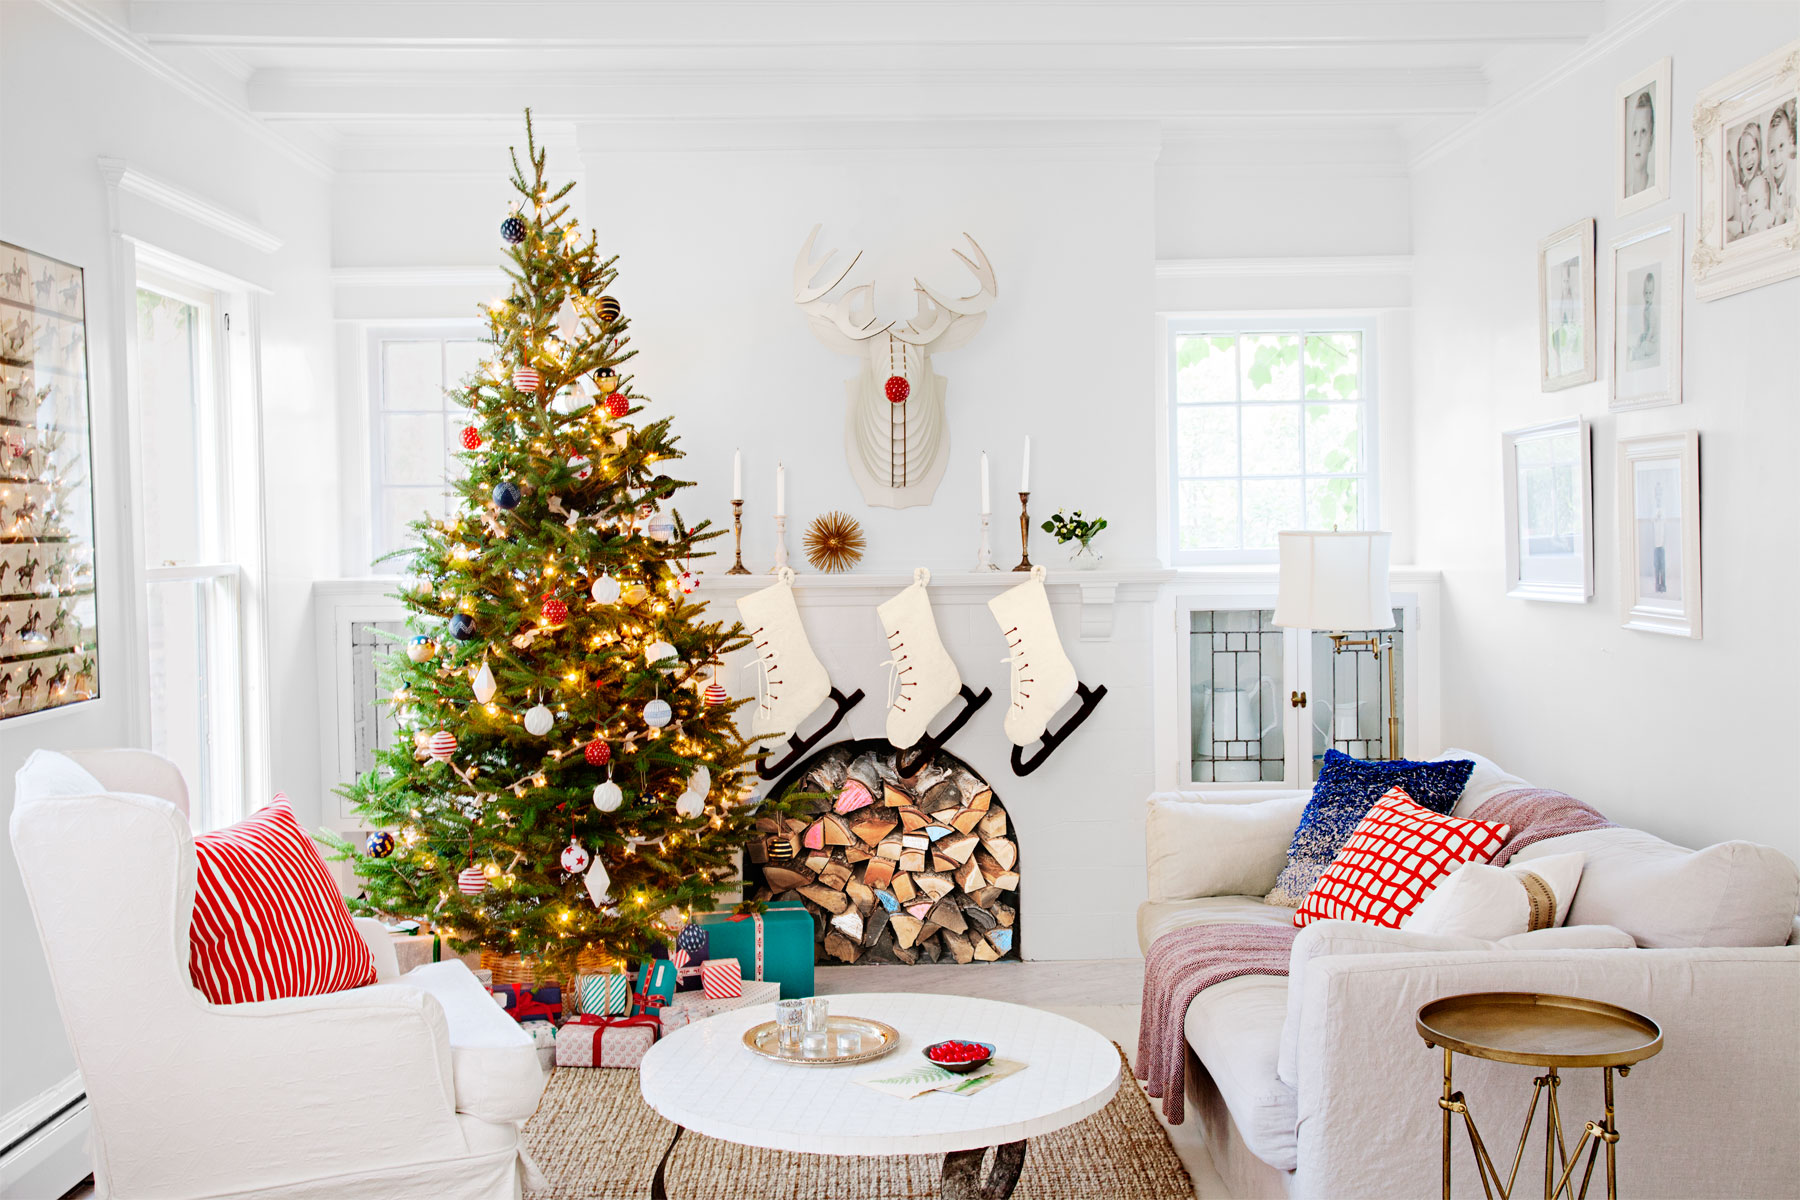 35 Christmas Mantel Decorations - Ideas for Holiday Fireplace ...